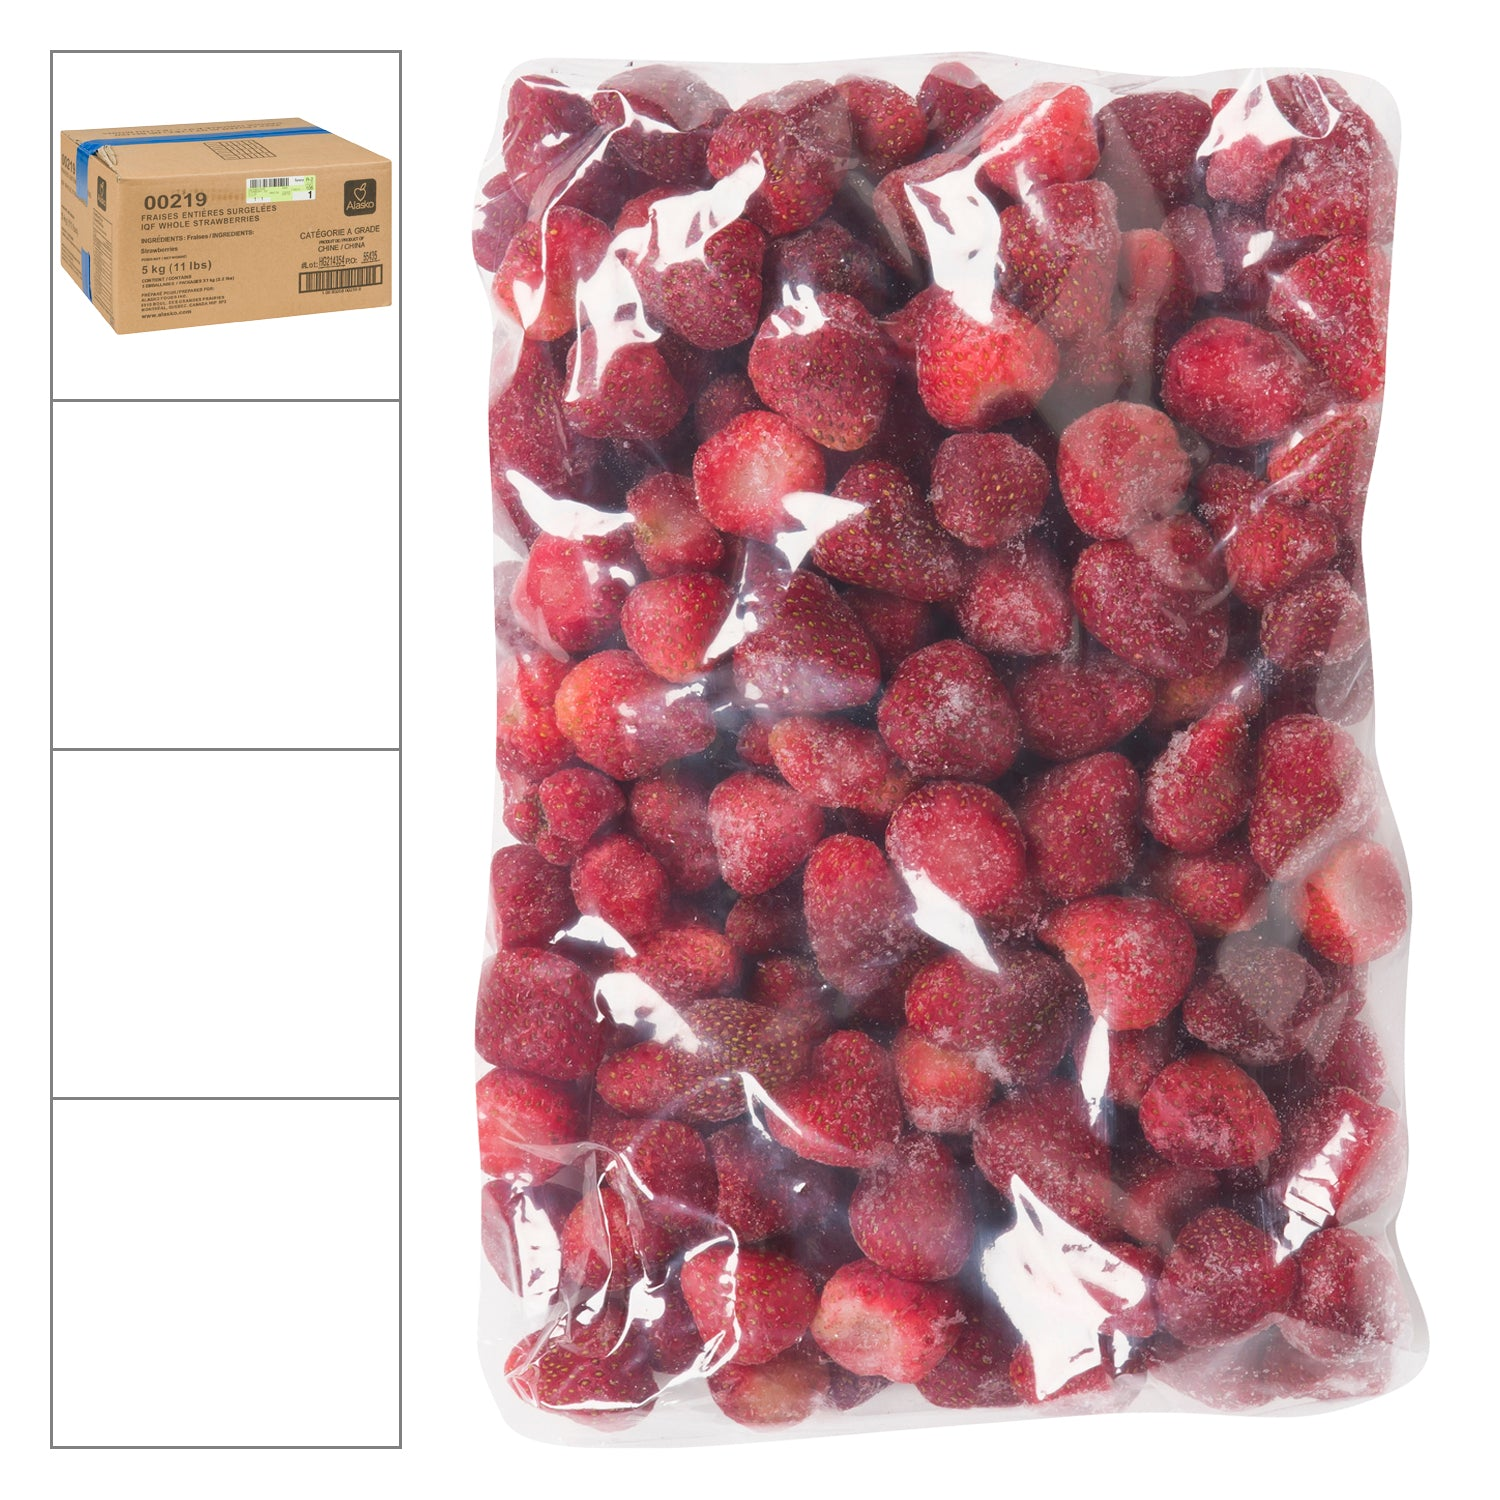 Alasko Individually Quick Frozen Whole Strawberries 1 kg - 5 Pack [$5.00/kg]